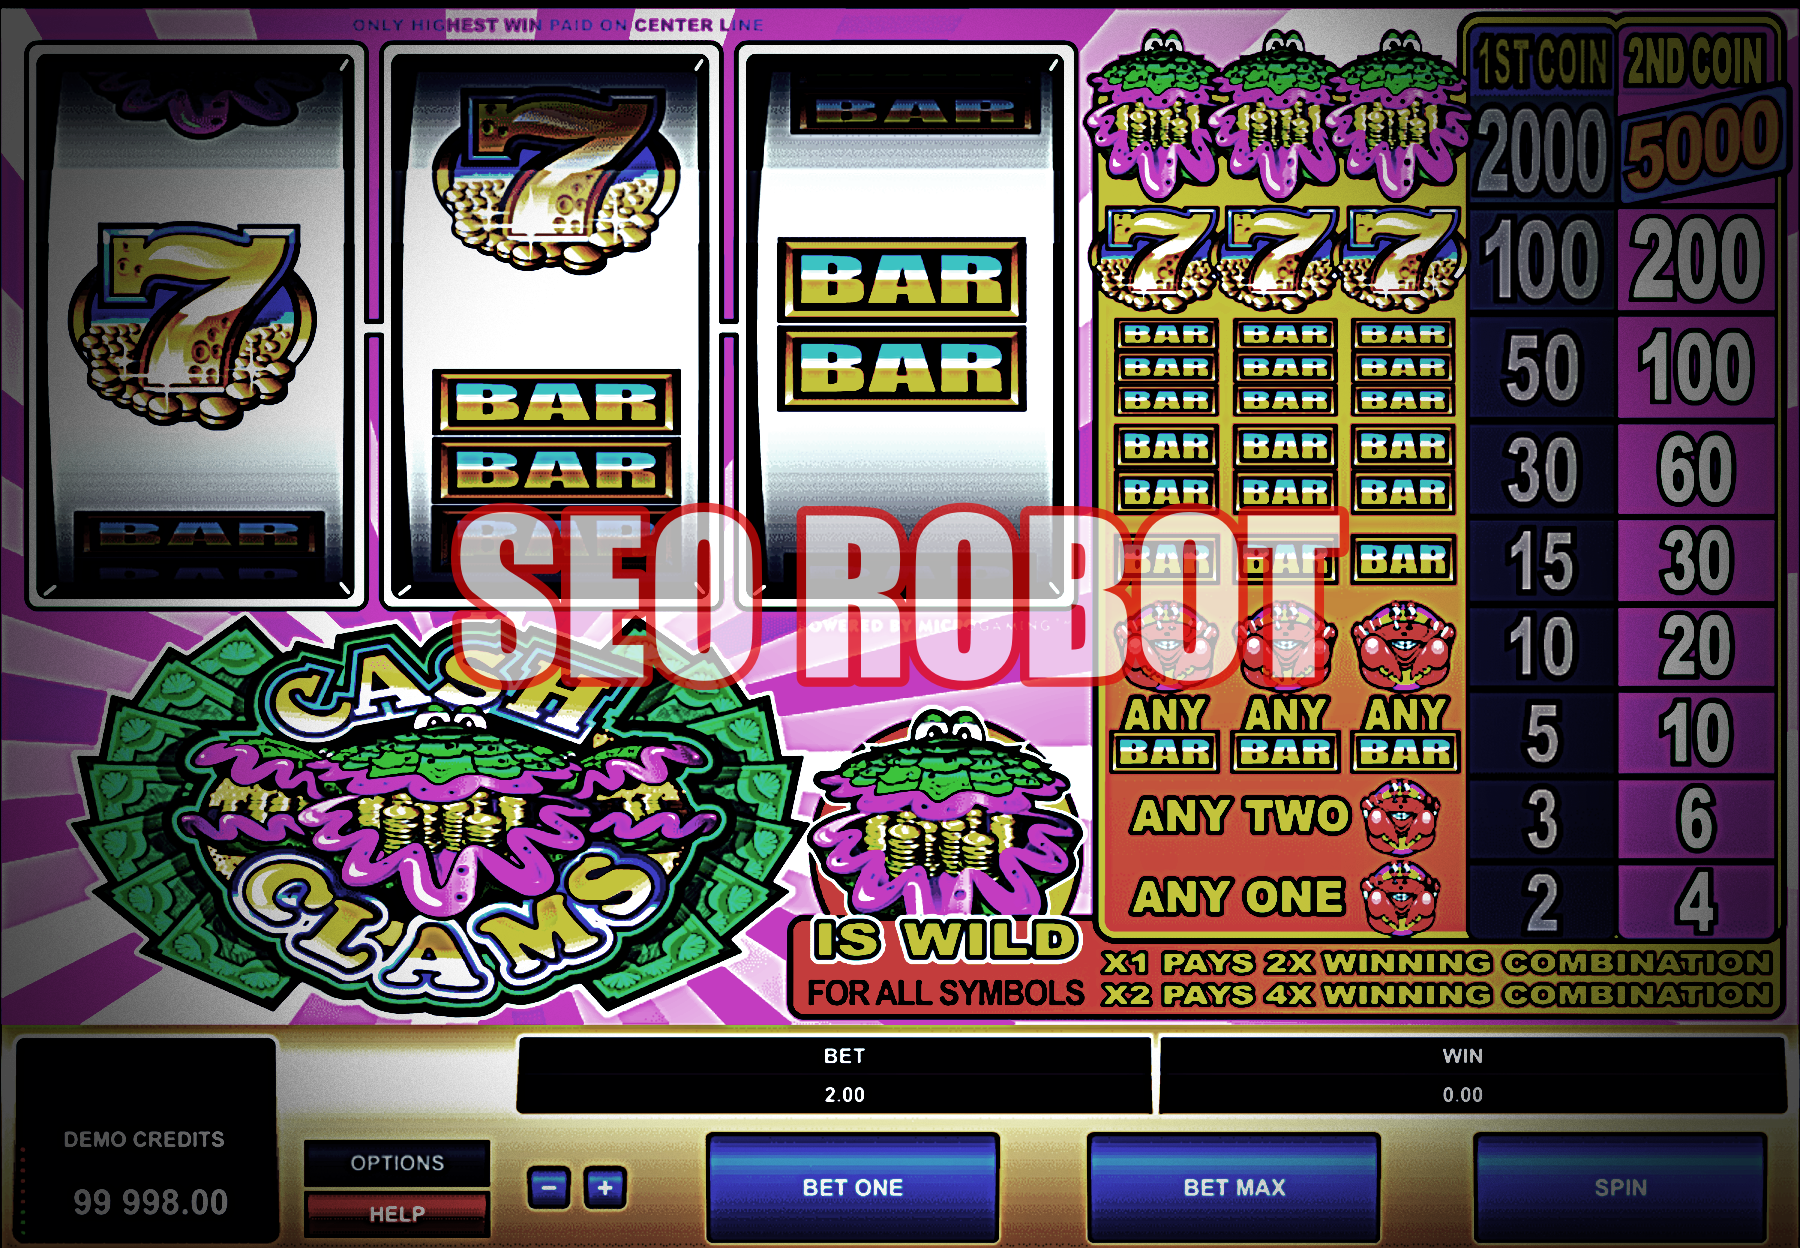 Online slot gambling and other gambling